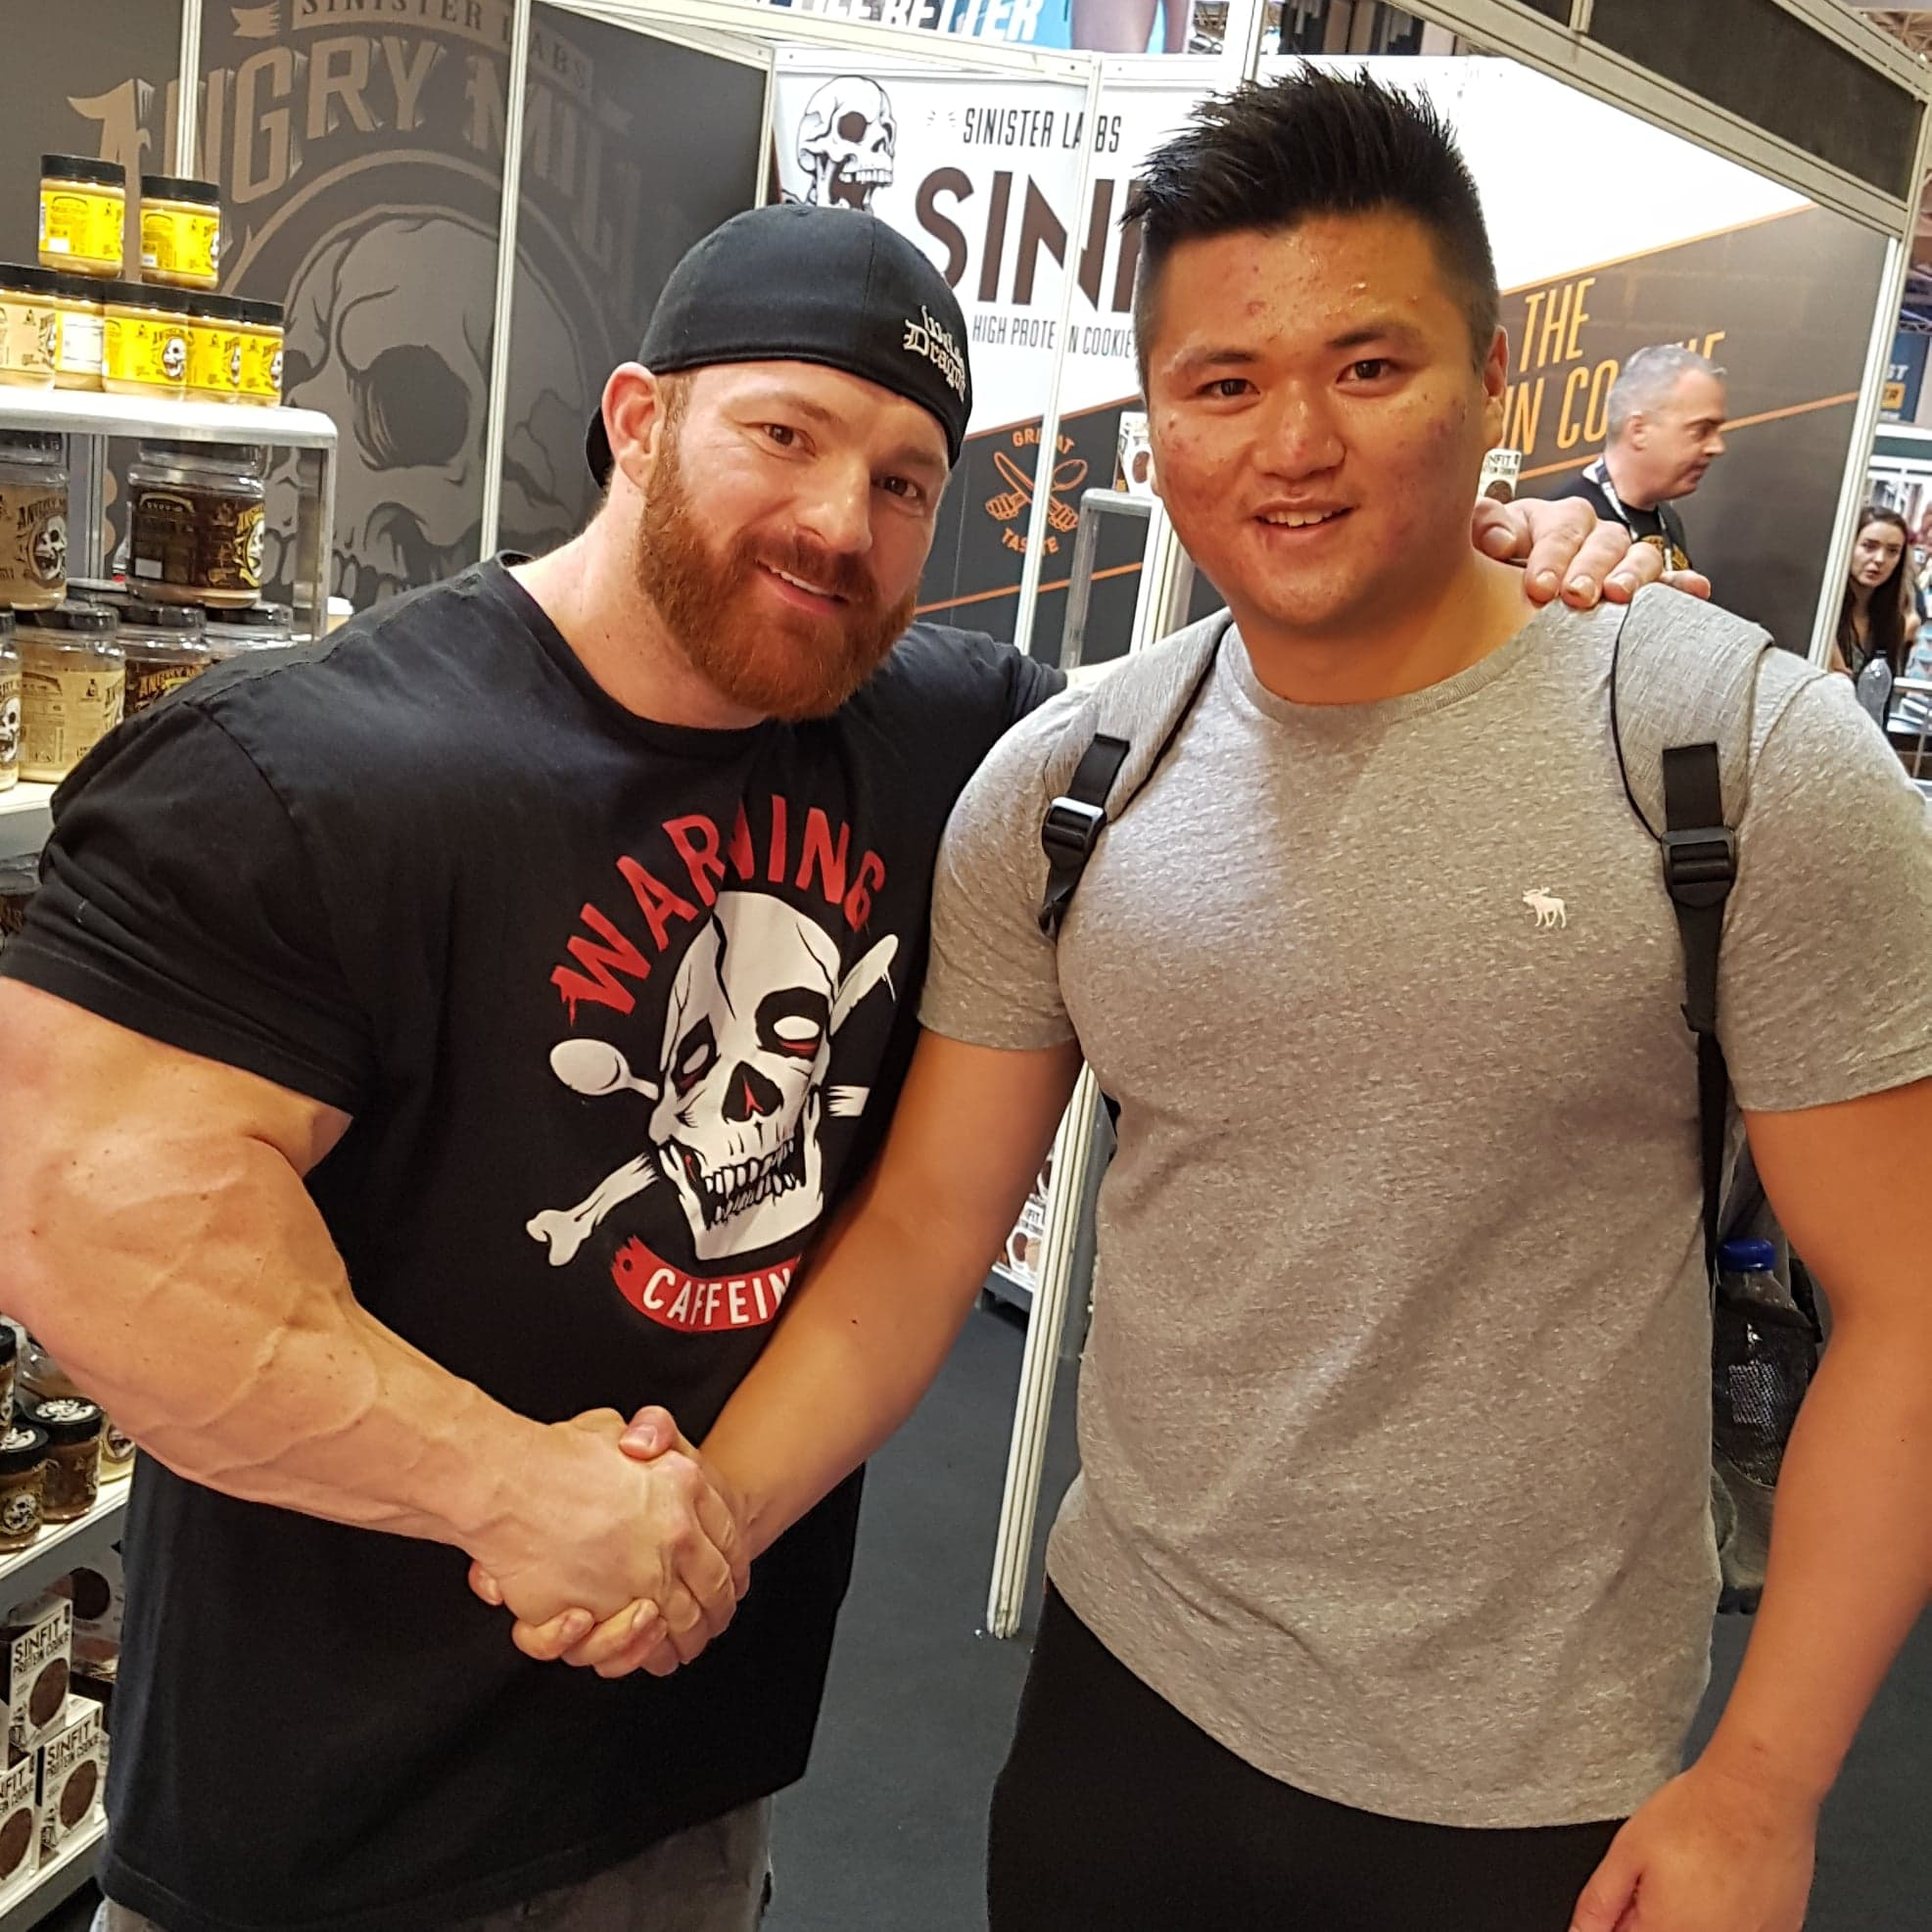 Bodypower 2018 and The Apprentice